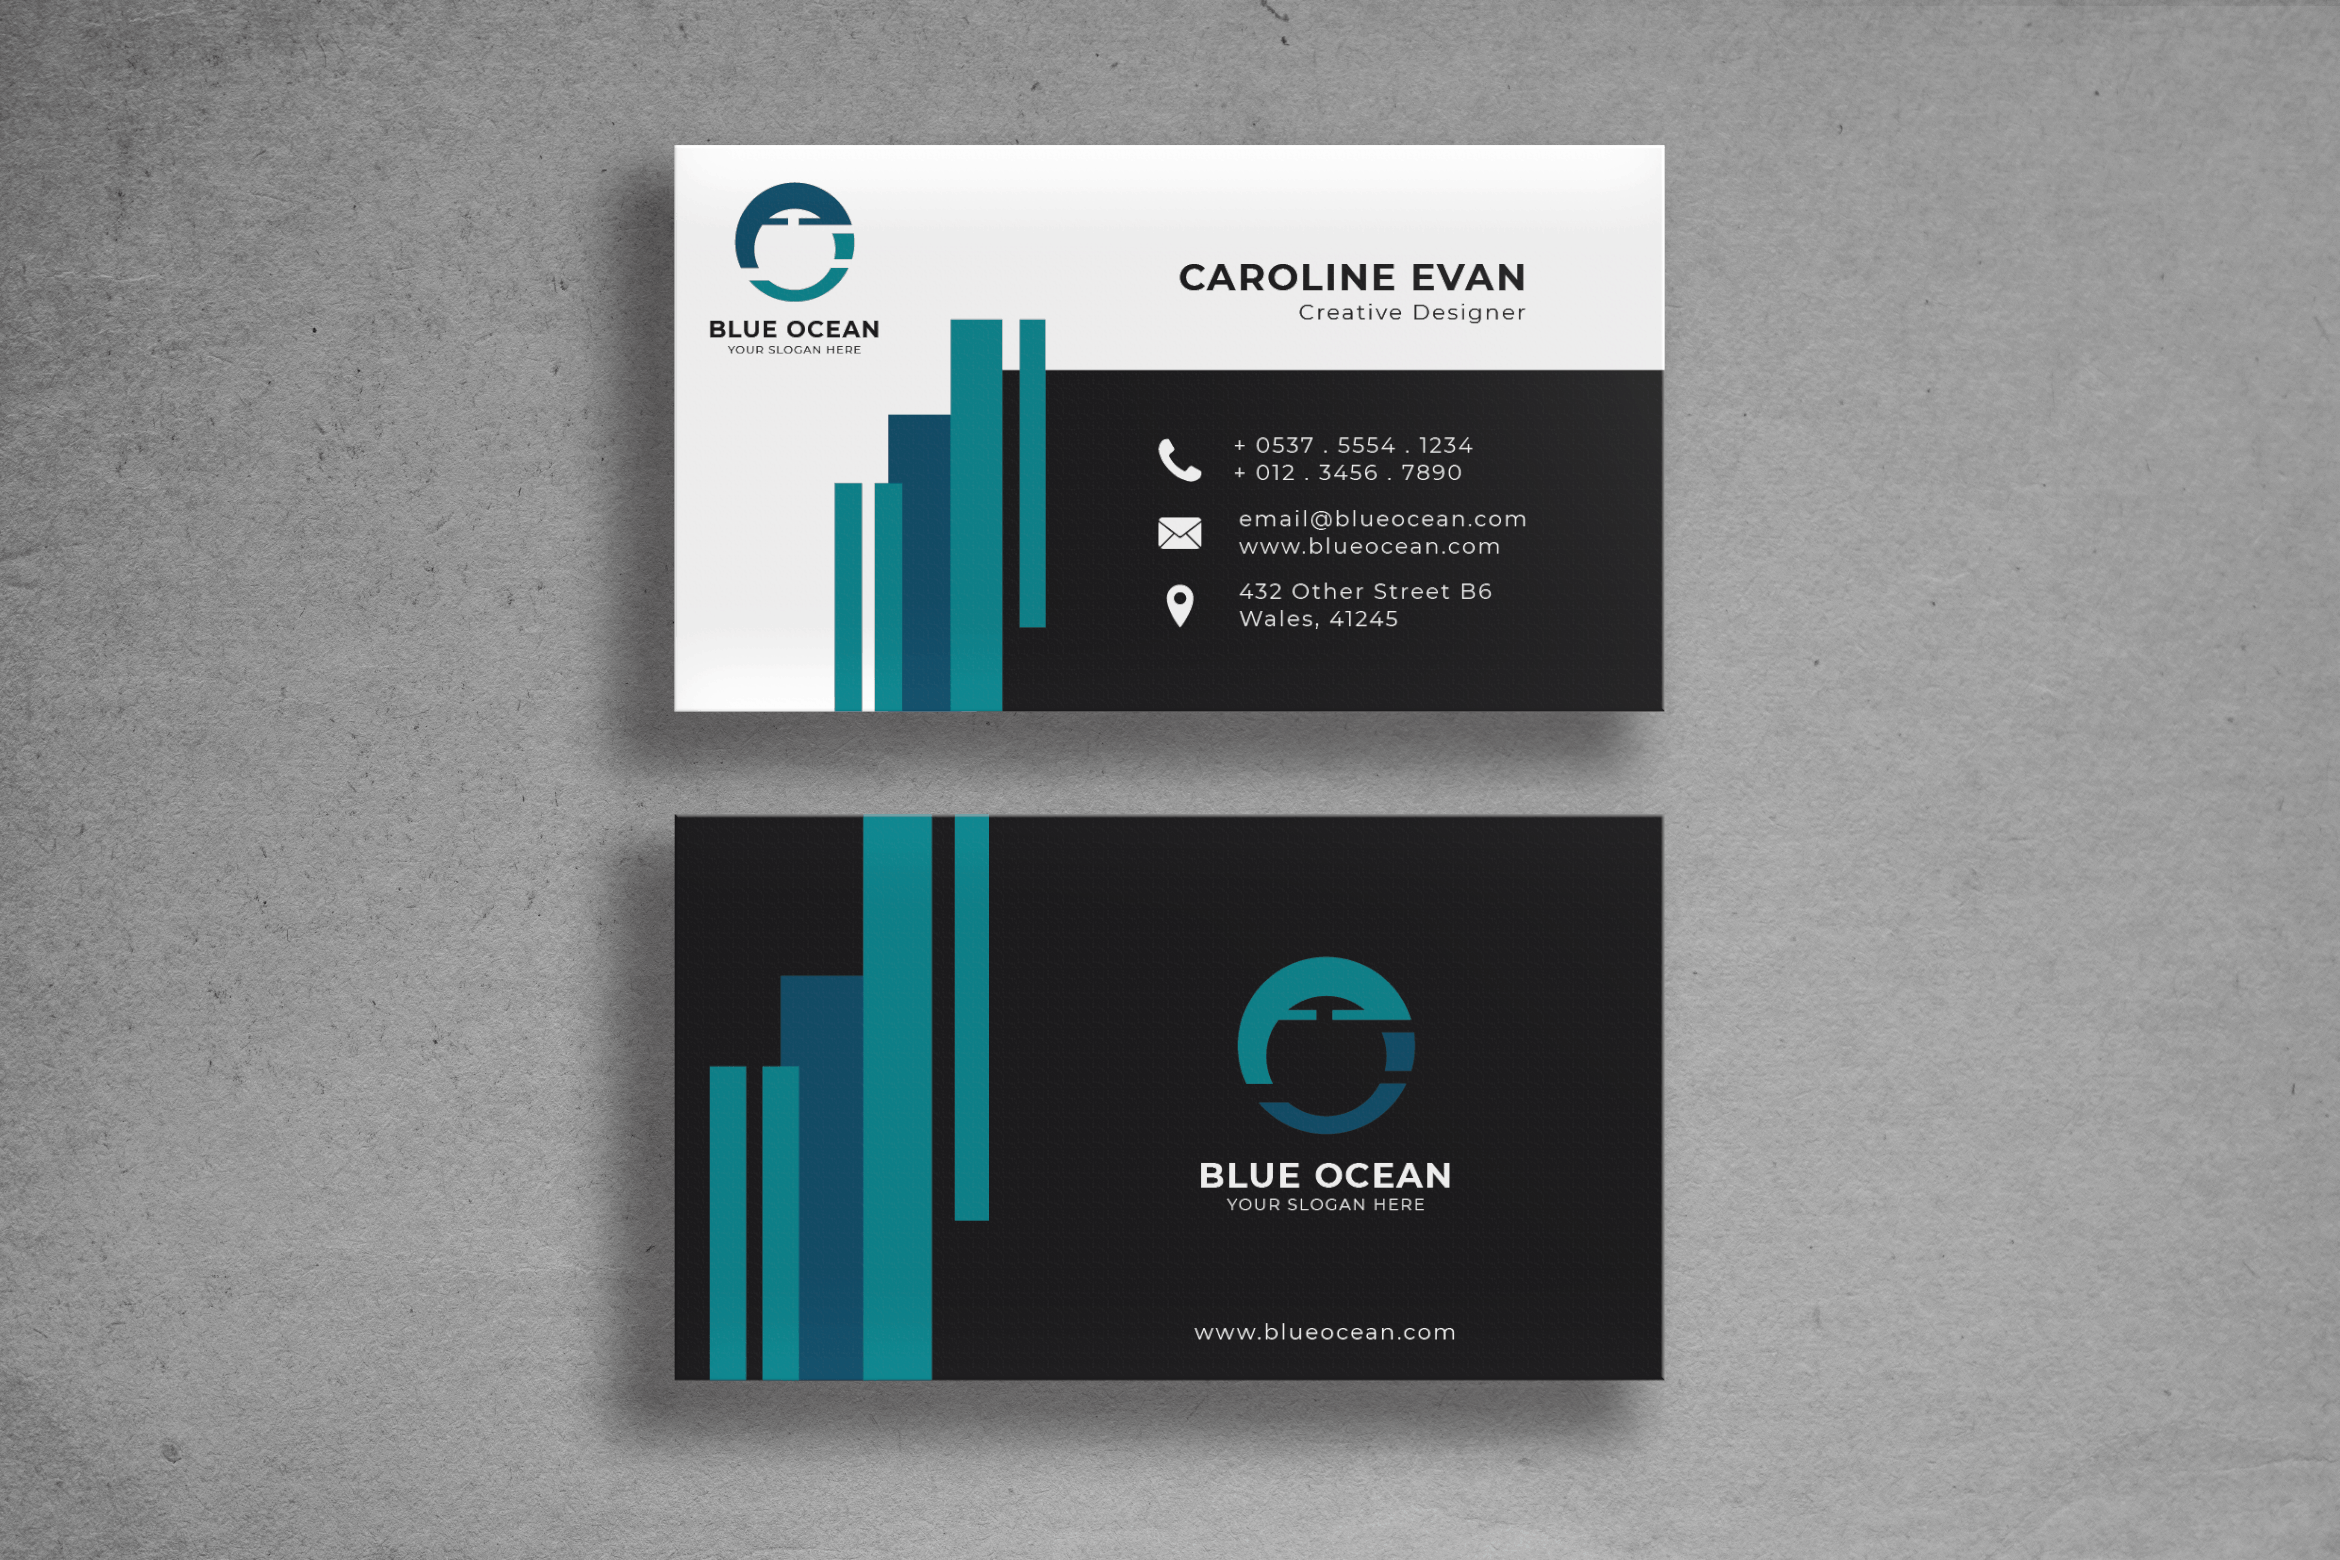 Business Card - Creative Designer Identity